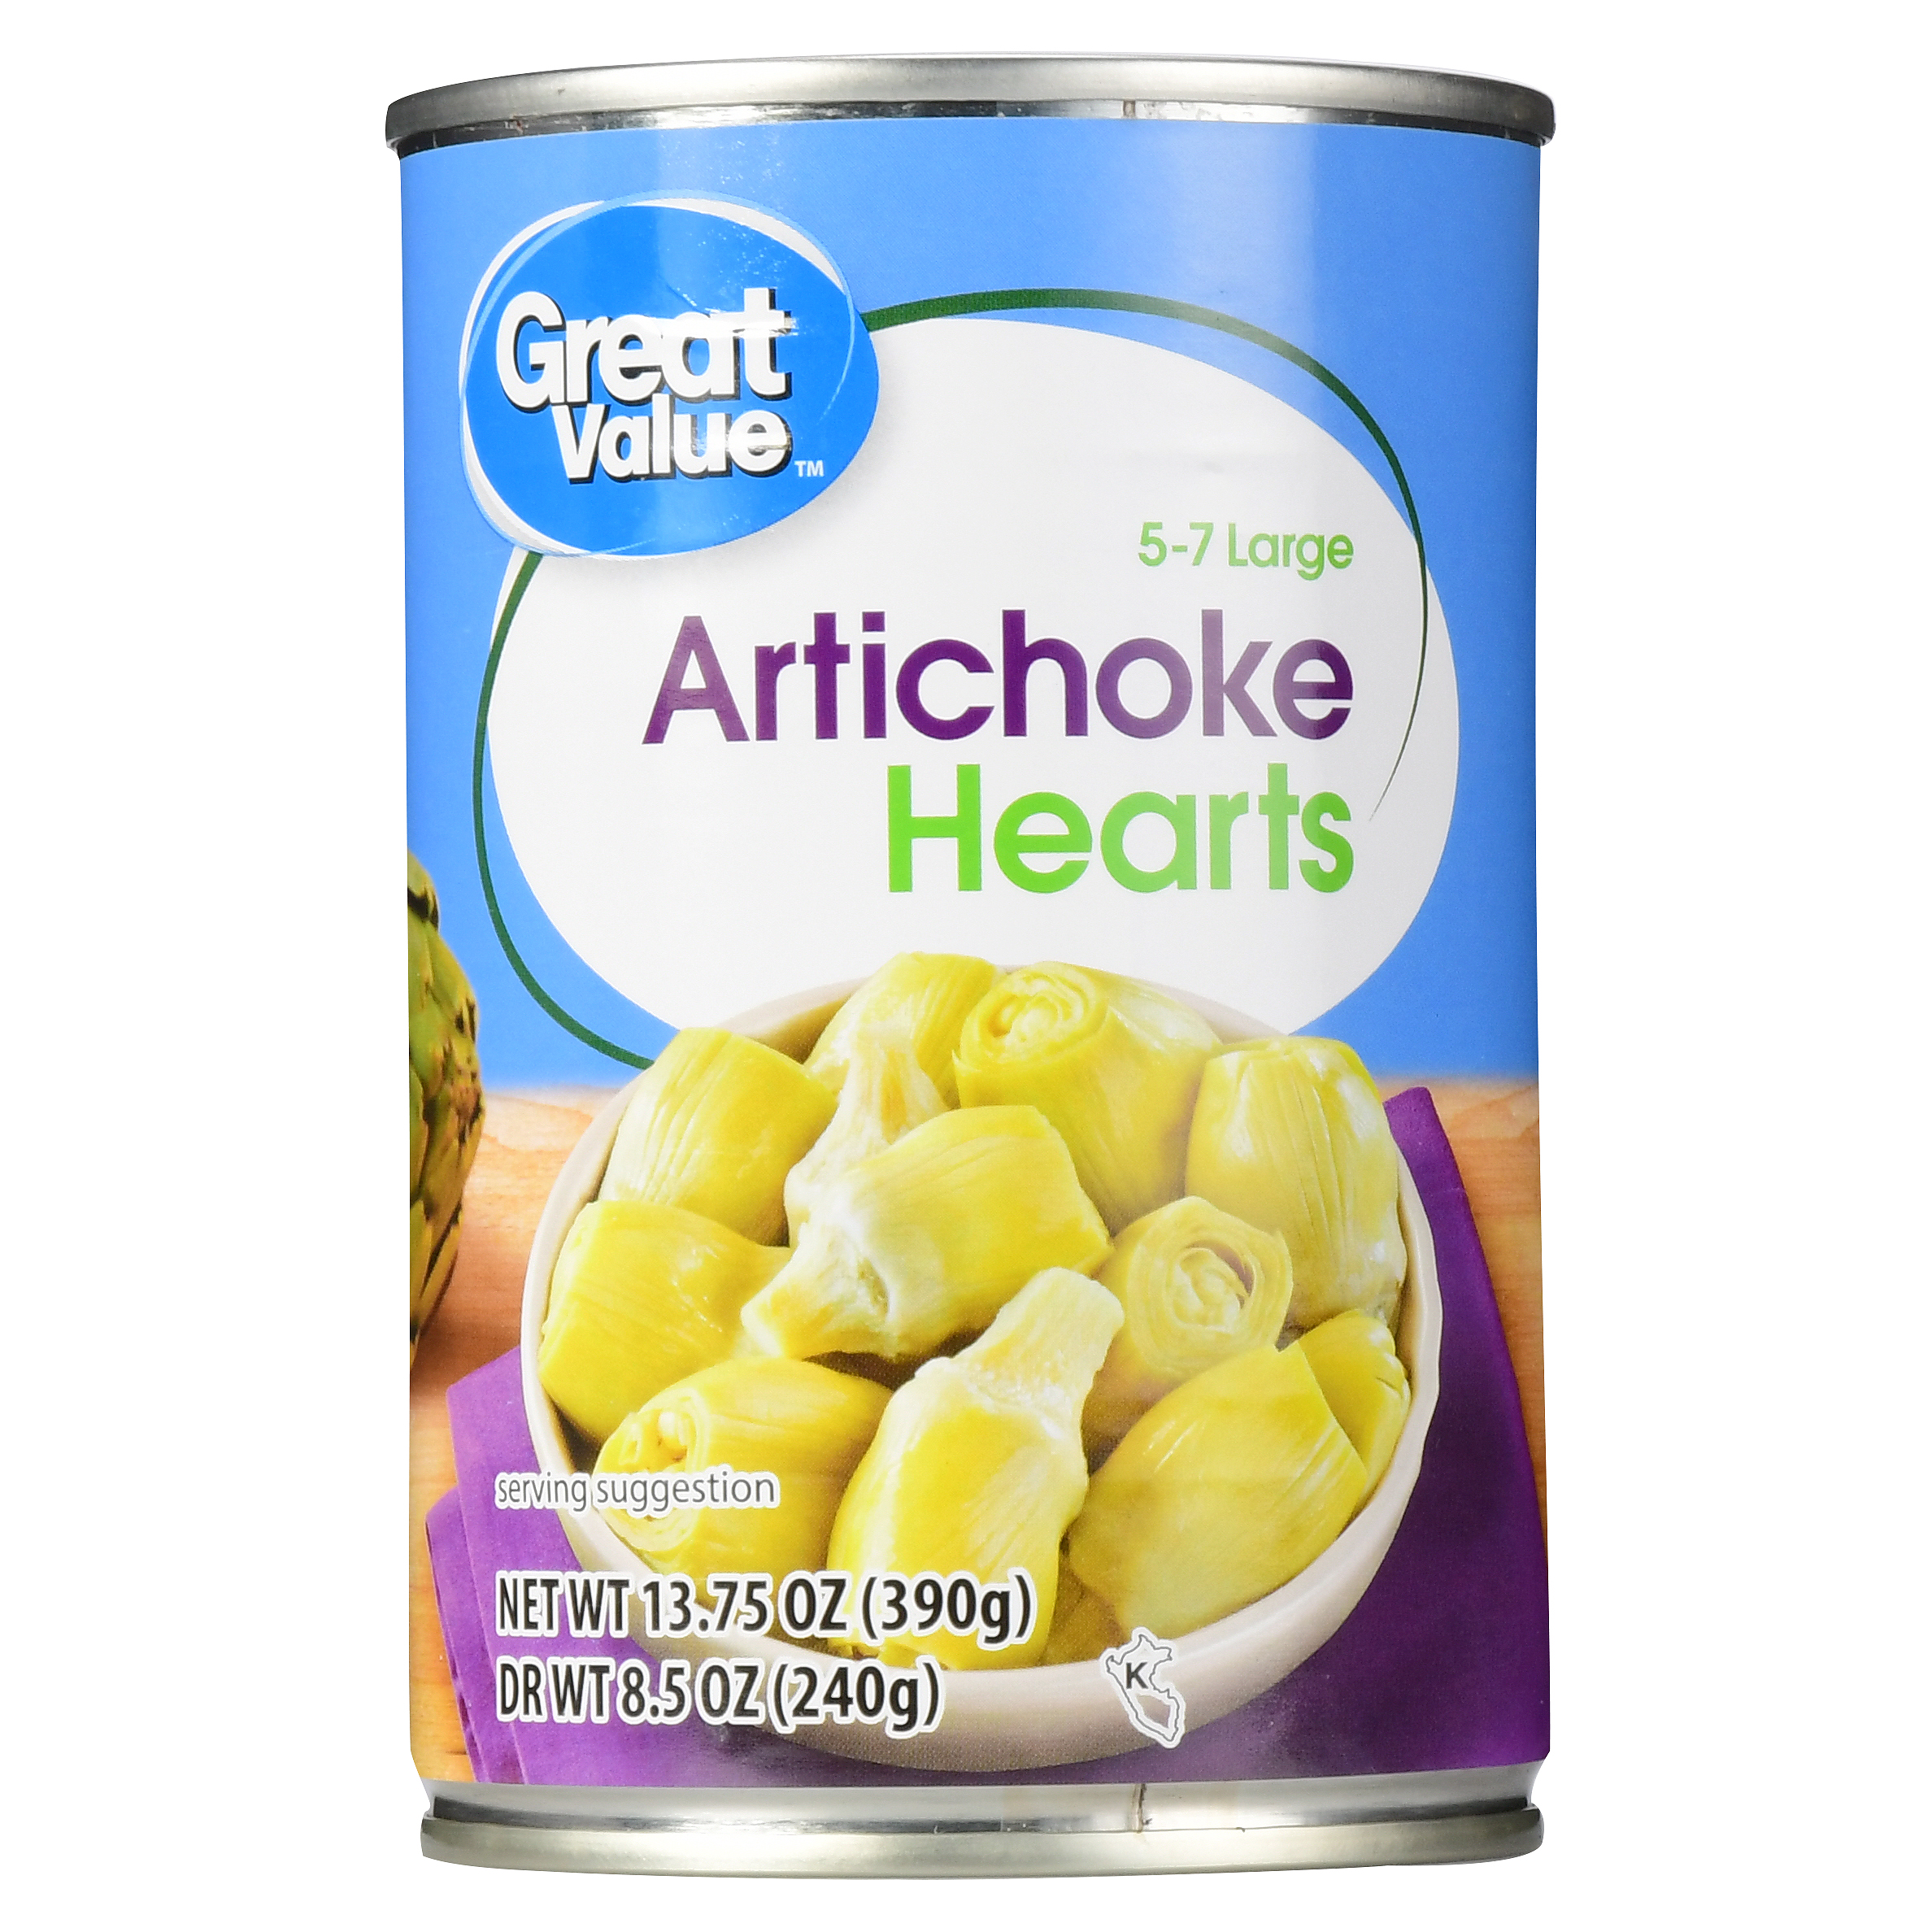 (3 Pack) Great Value Artichoke Hearts, 5-7 Large, 13.75 oz